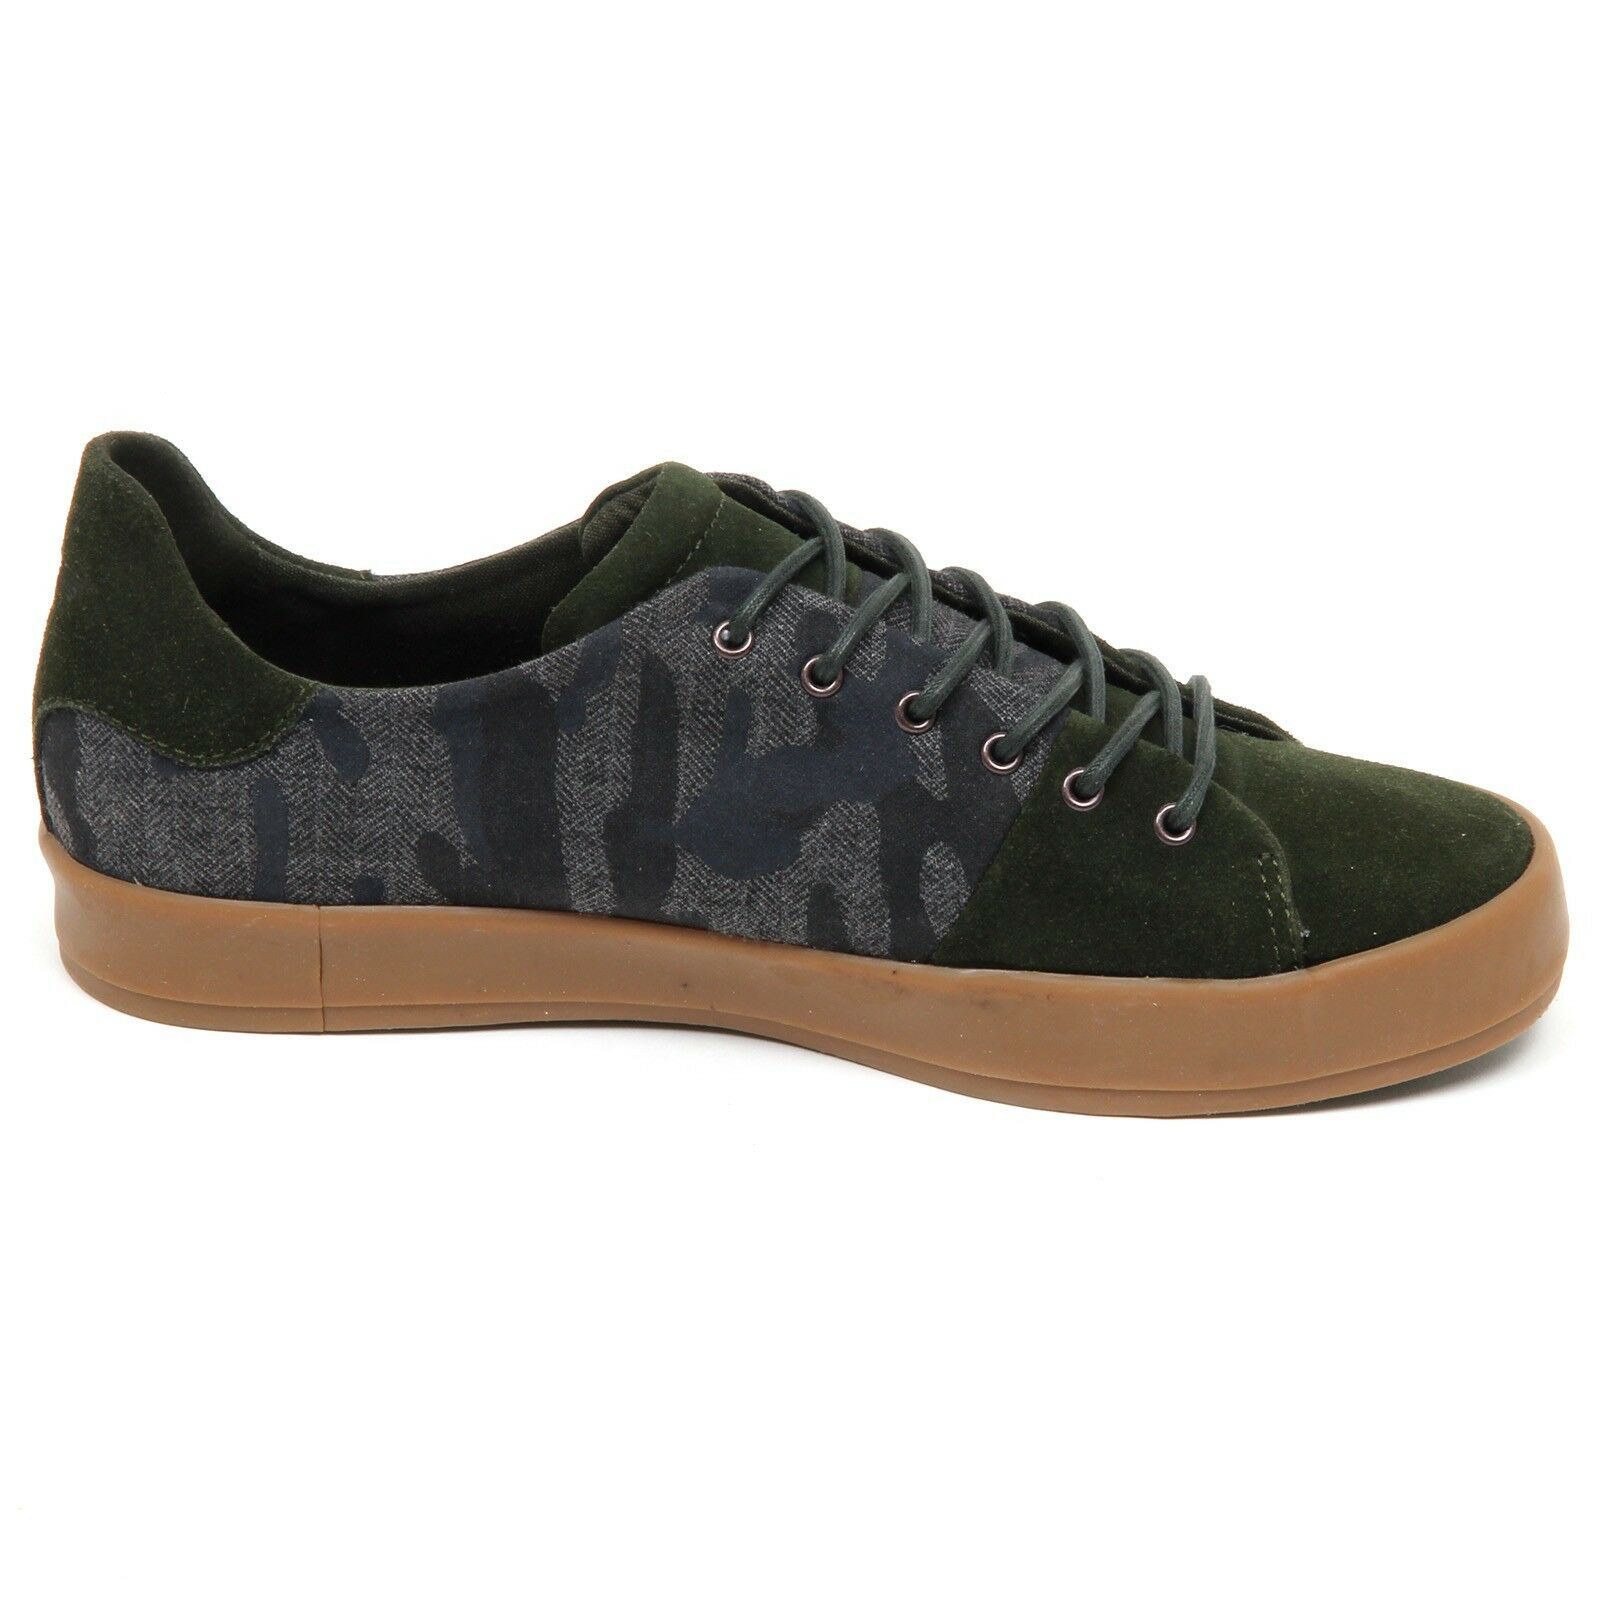 D4944 (without box) scarpe da ginnastica uomo uomo uomo blu verde CREATIVE RECREATION scarpe man 0e6d78